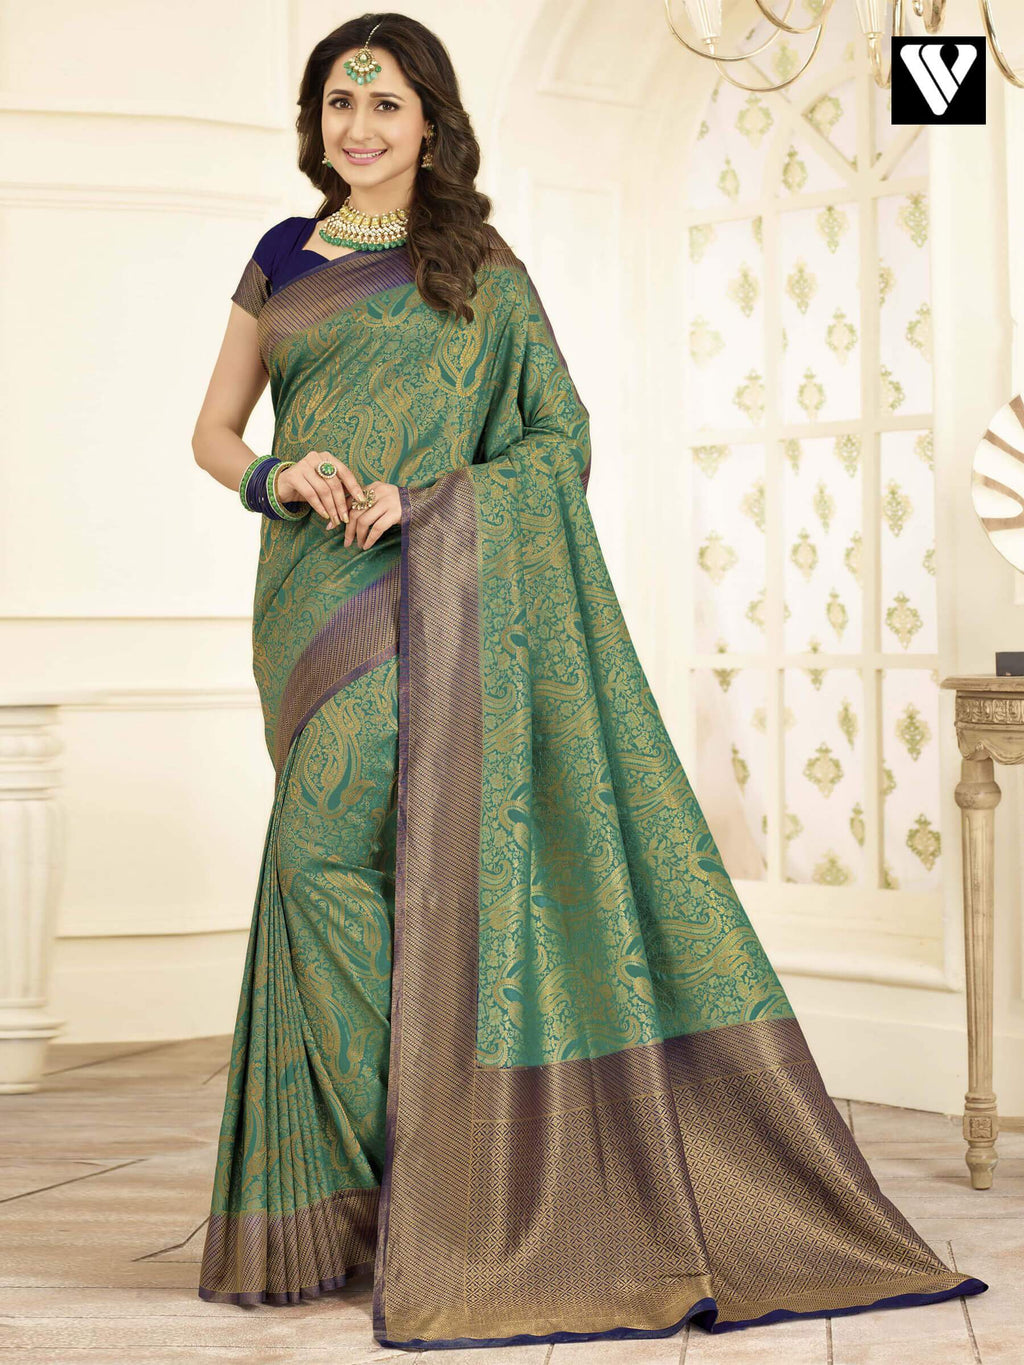 Designer Royal Look Banarasi Art Silk Sarees In Green Gold